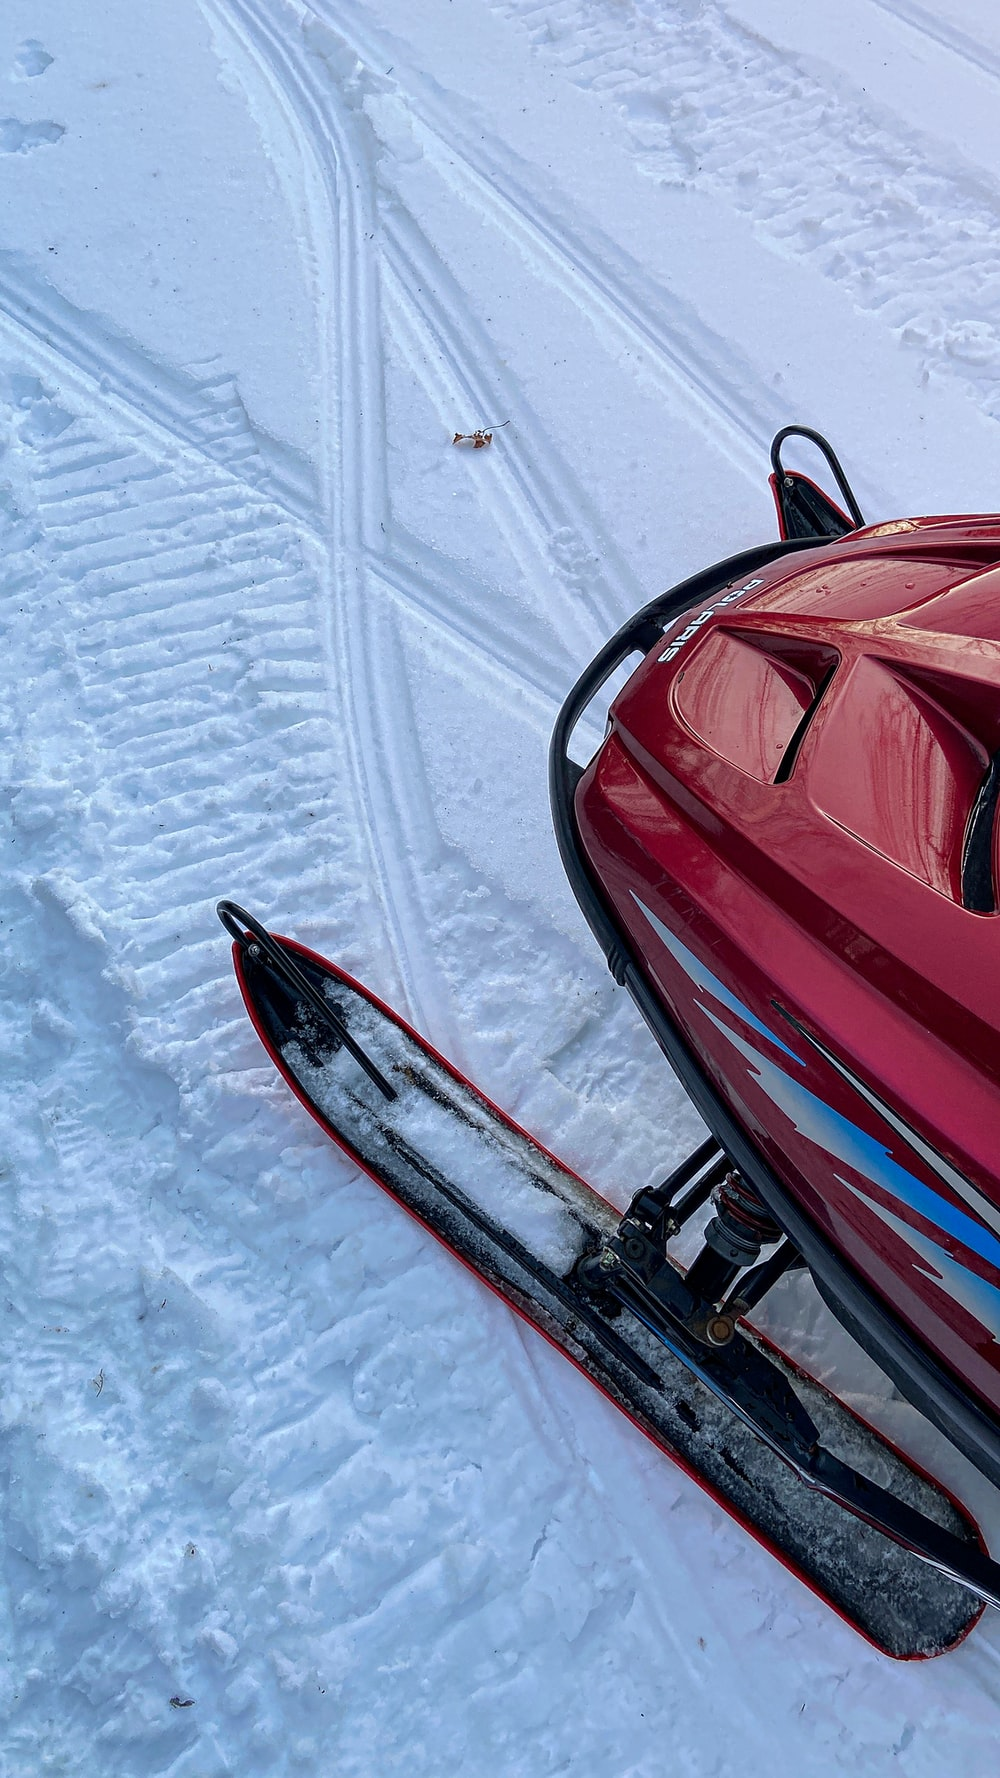 red and black snow sled on snow covered ground during daytime